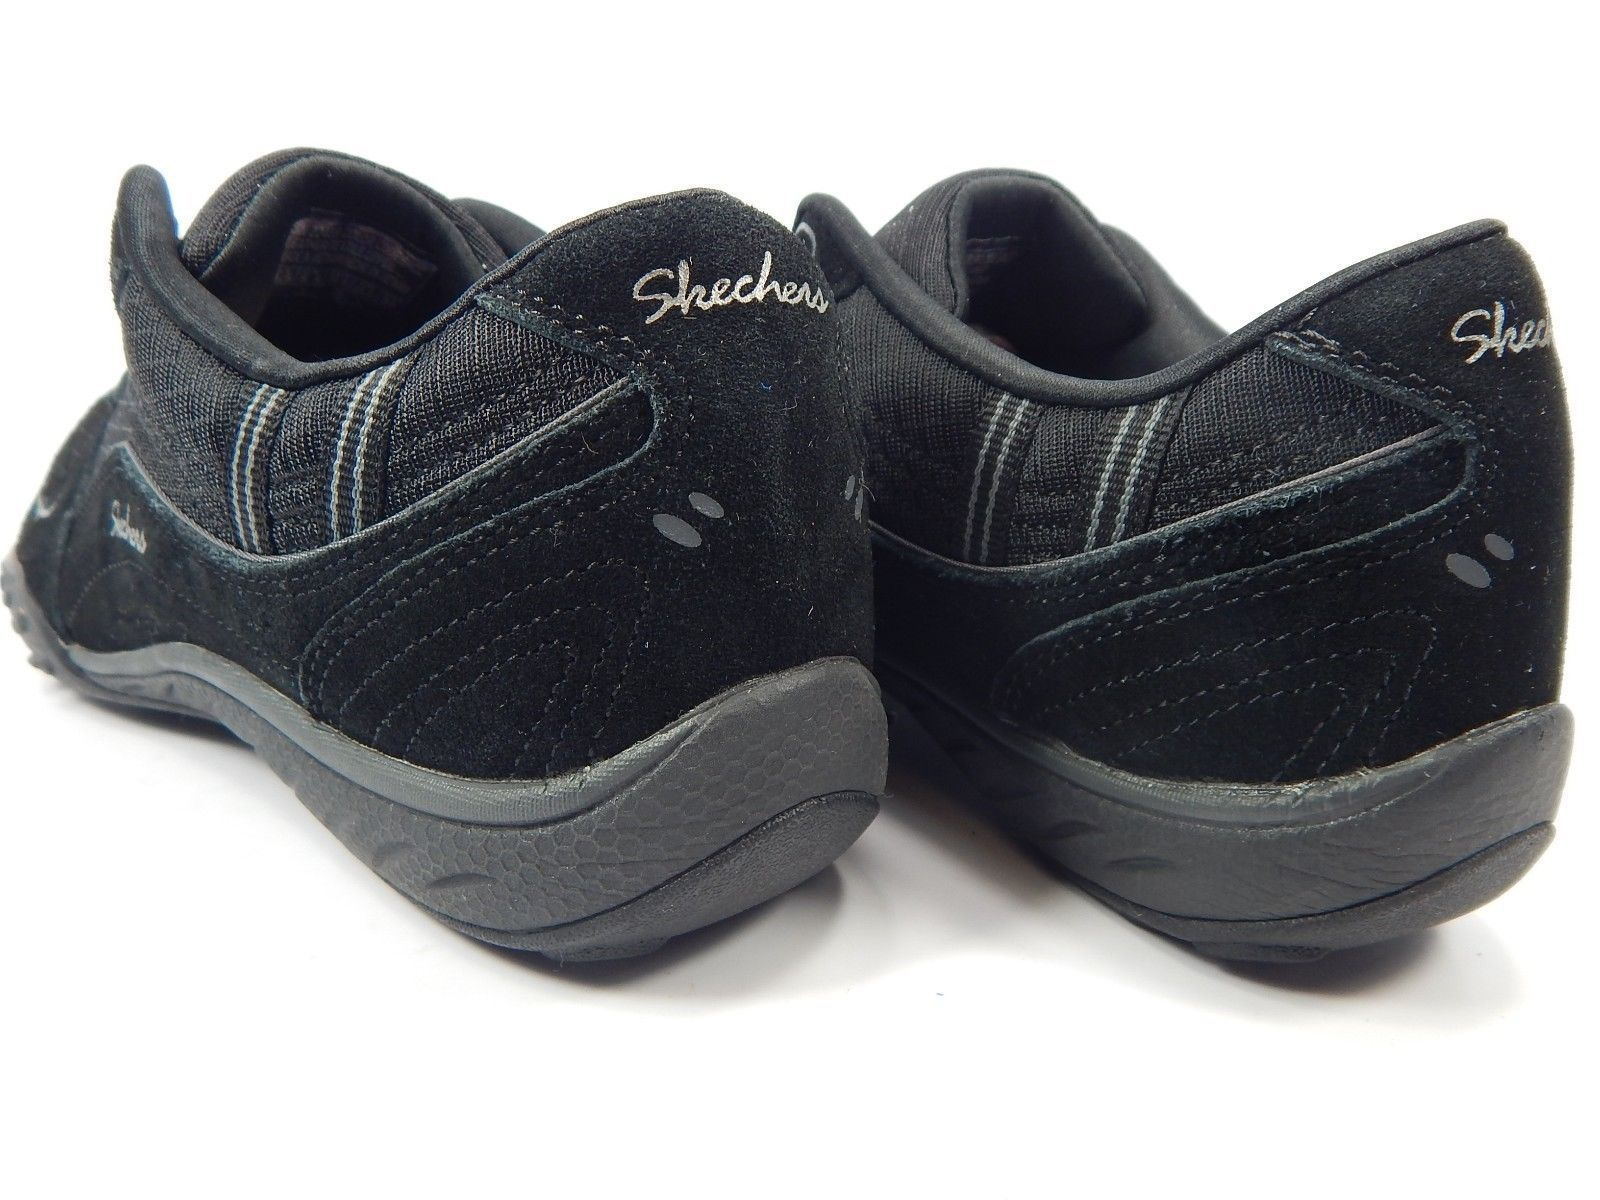 Skechers Relaxed Fit: Breathe Easy Just Relax Sz 8.5 M (B) EU 38.5 Women's Shoes